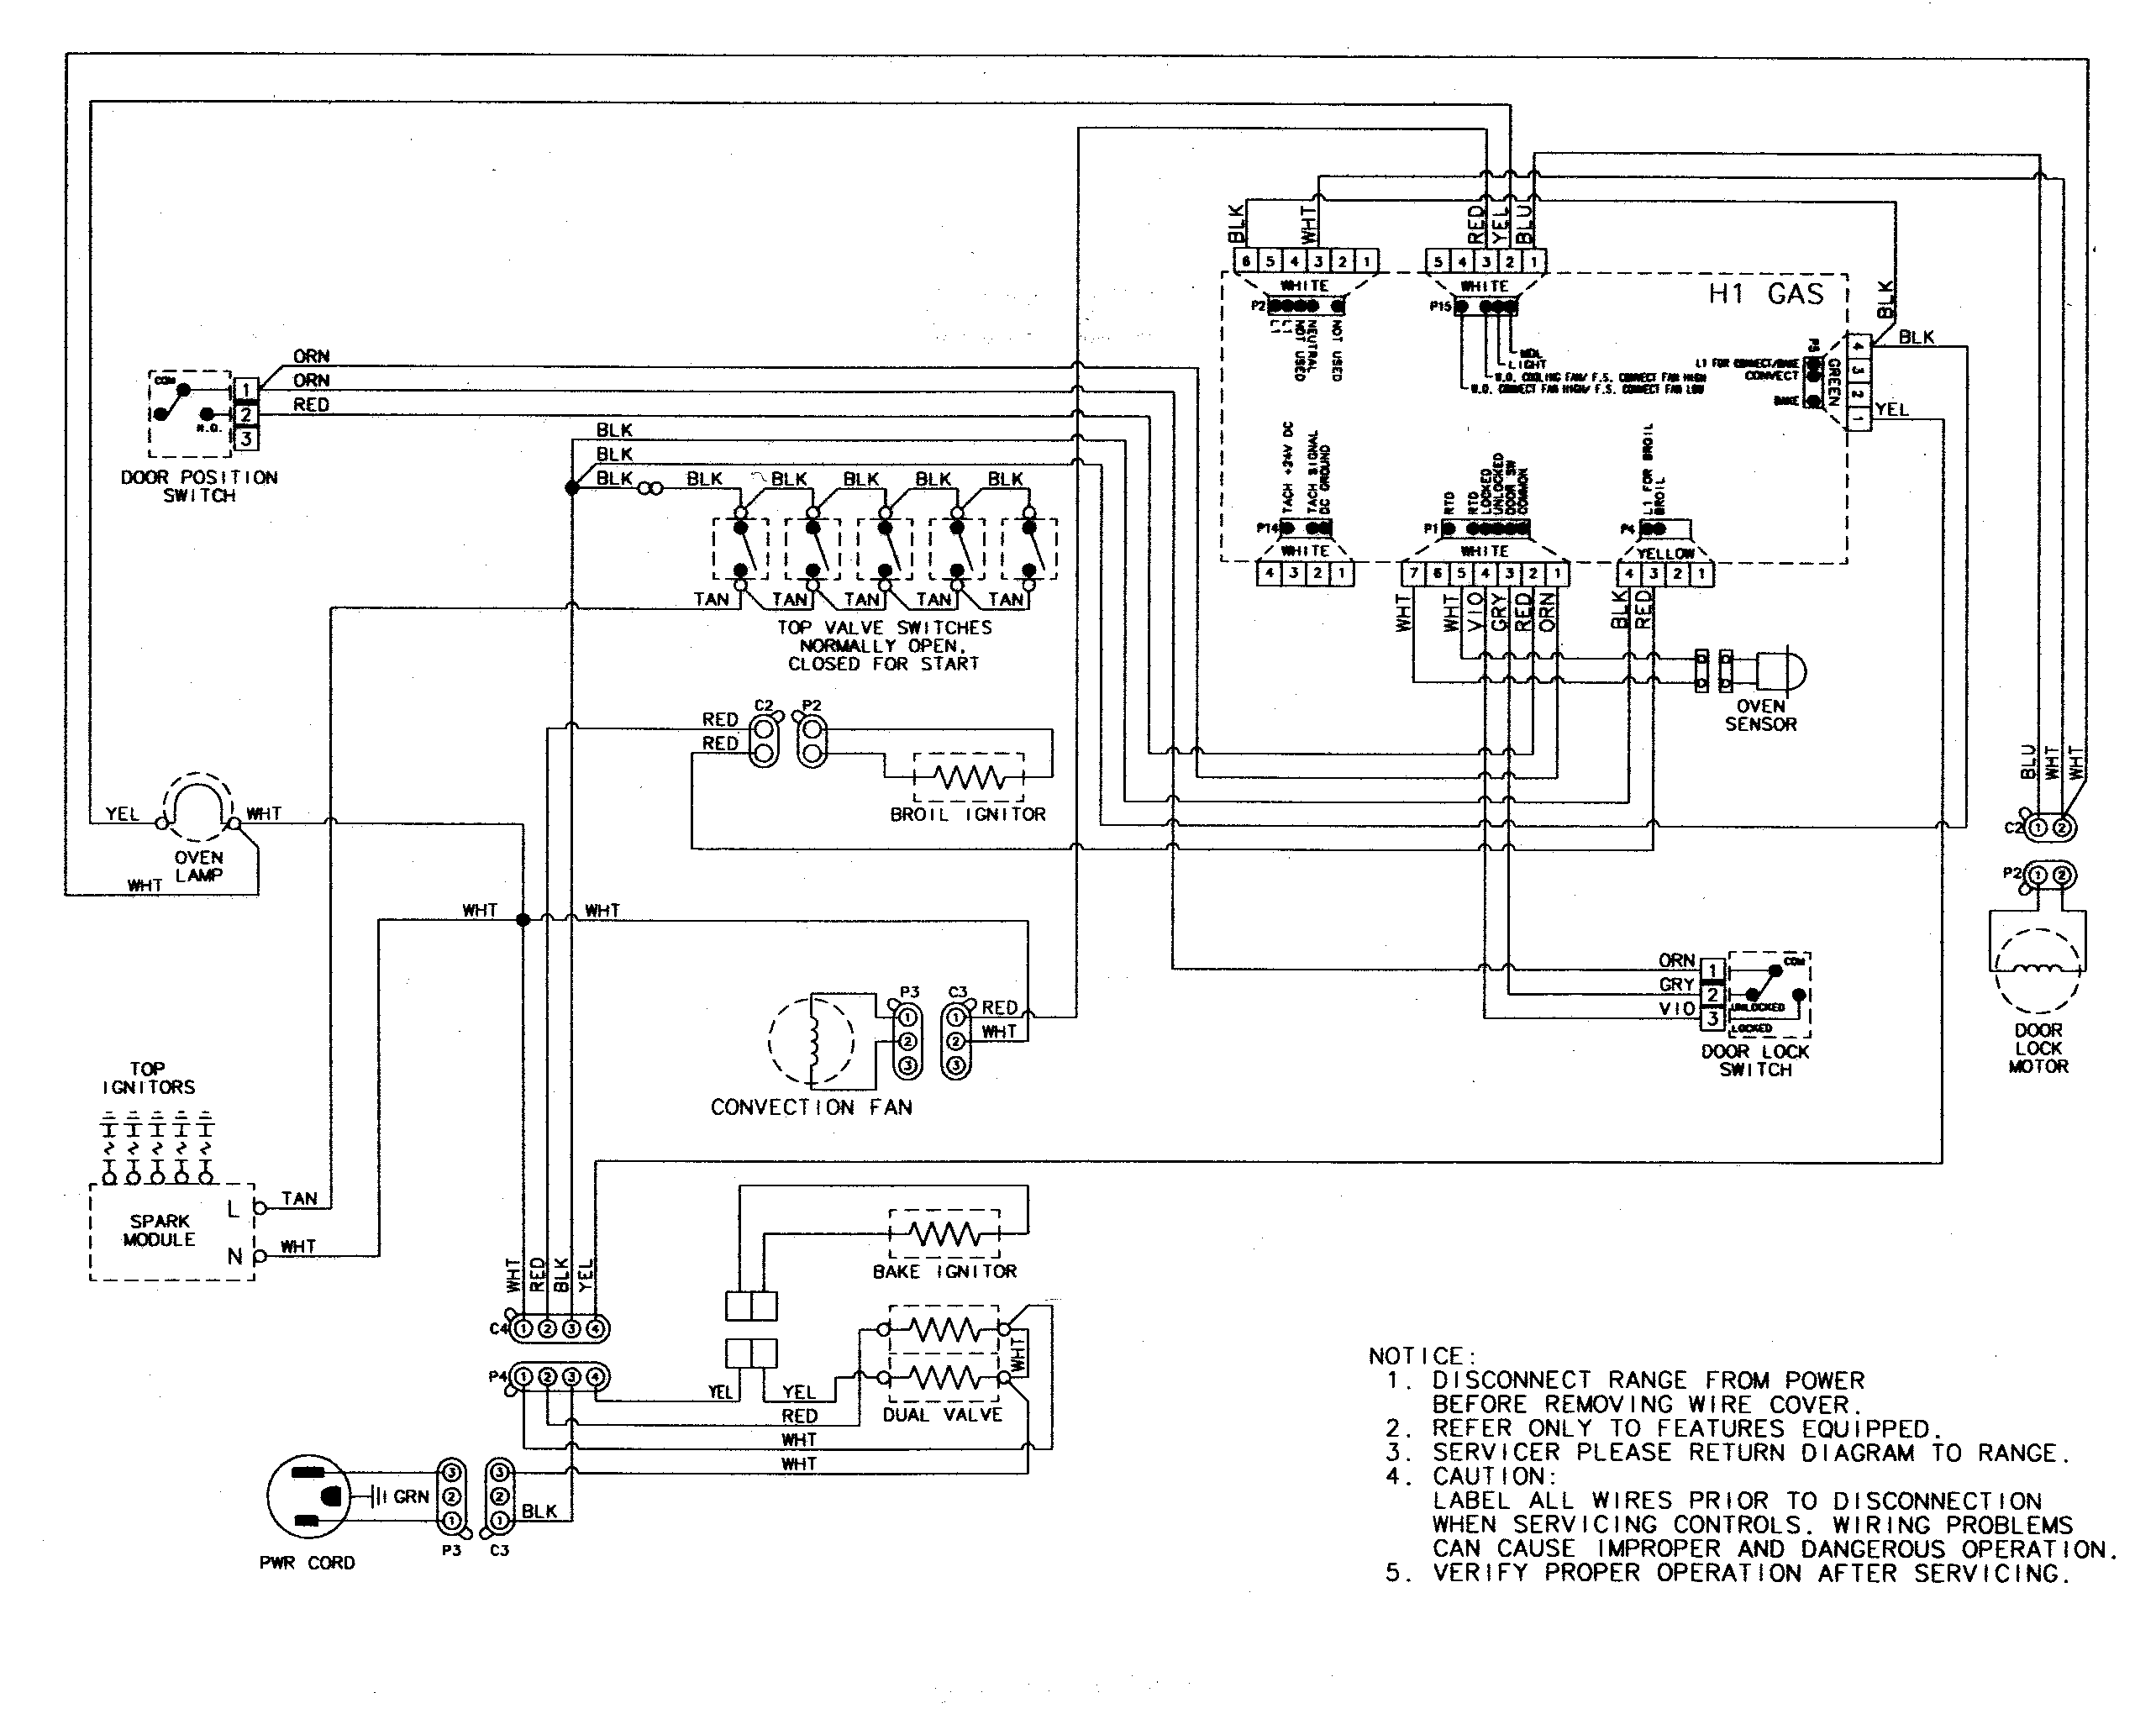 Fridge Blue Light Special 109767 3 moreover Hvac Heating And Cooling Thermostats likewise 7i4ha Gmc Sierra Denali Provide Relevant Wiring Diagrams further Thermostat and thermostat housing 499 in addition Sip01595 Bandsaw Wiring Diagram. on electric heat wiring diagram